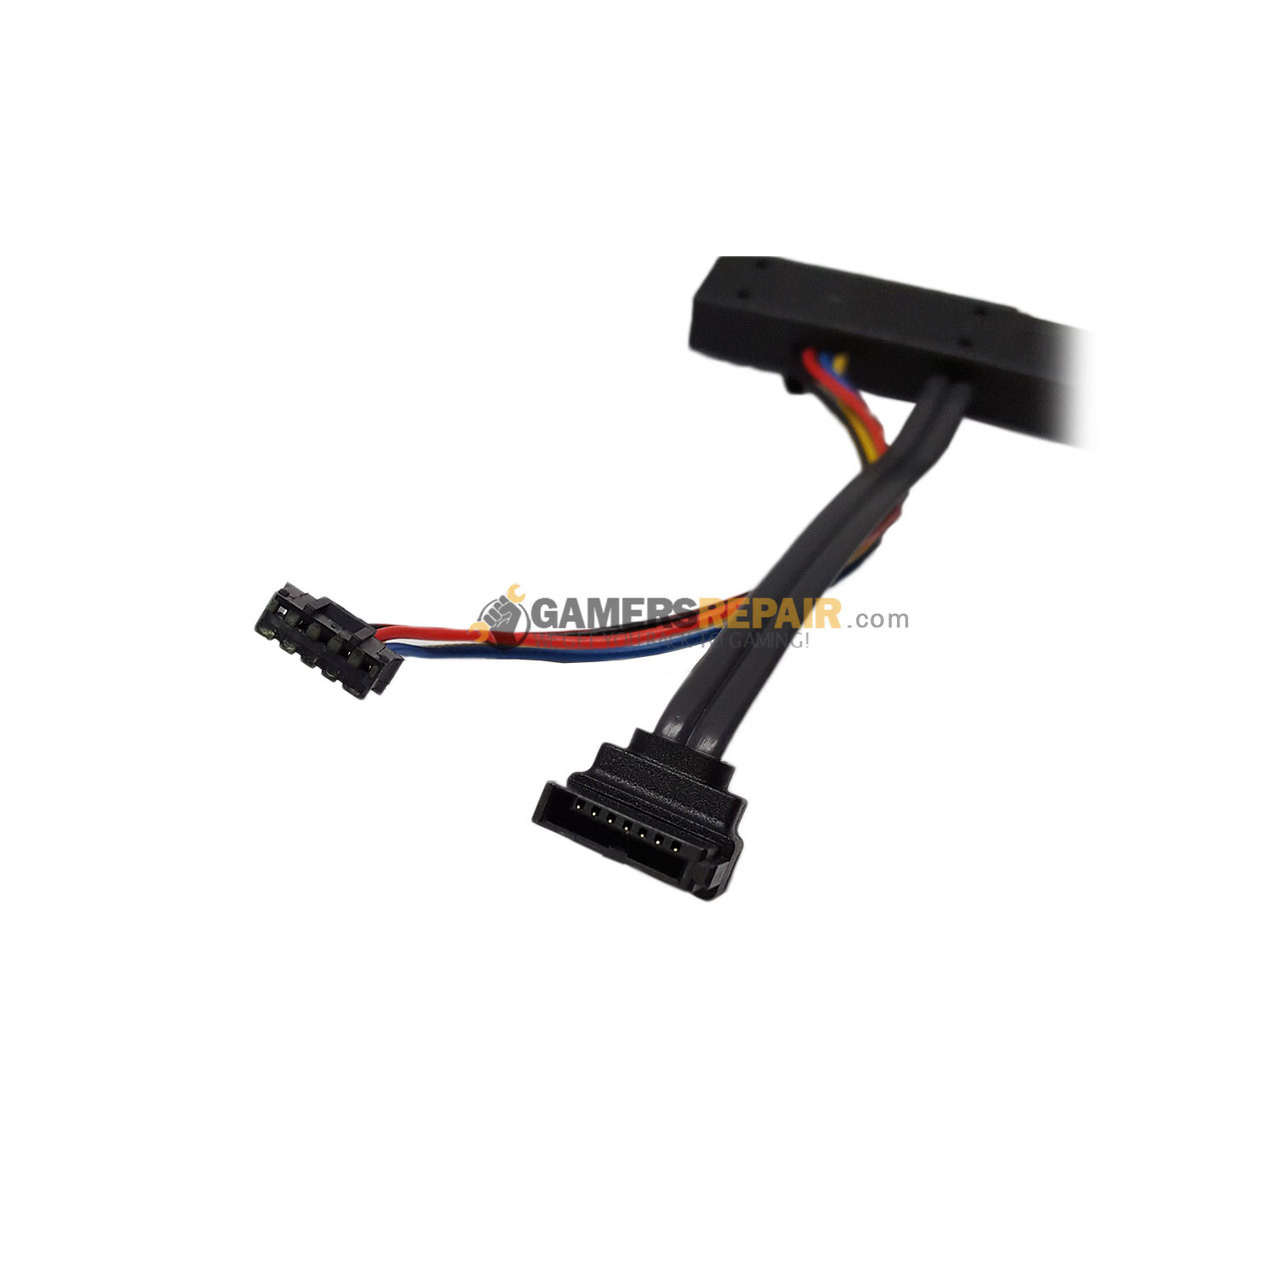 OEM Hard Drive Connector Cable for Xbox ONE S (Slim)